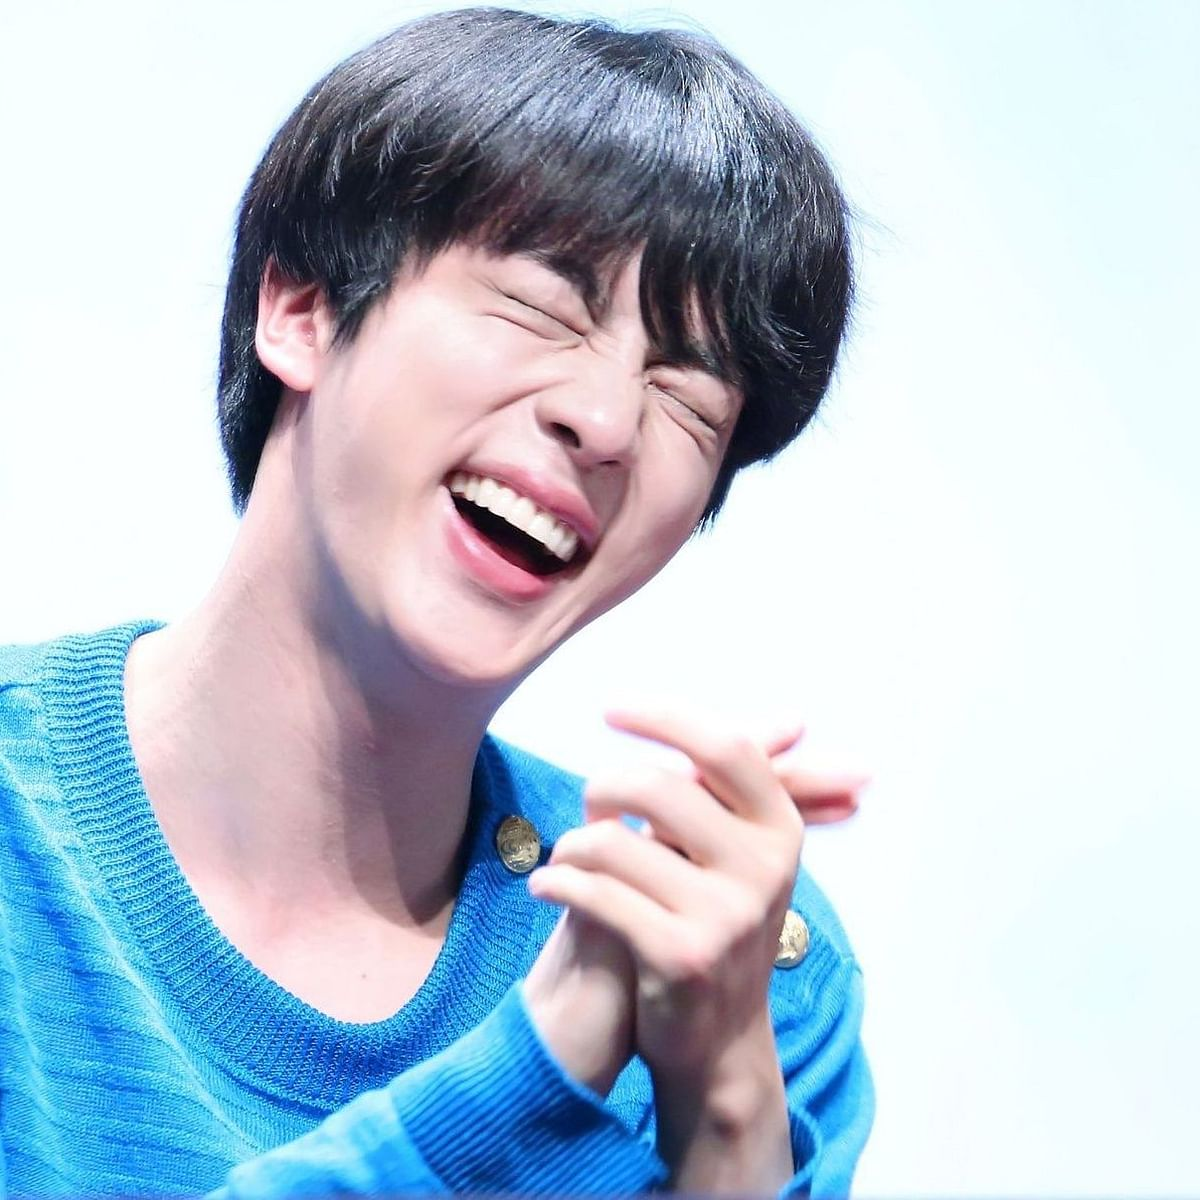 Happy Birthday Jin: Here's a compilation of the BTS hyung's best dad jokes